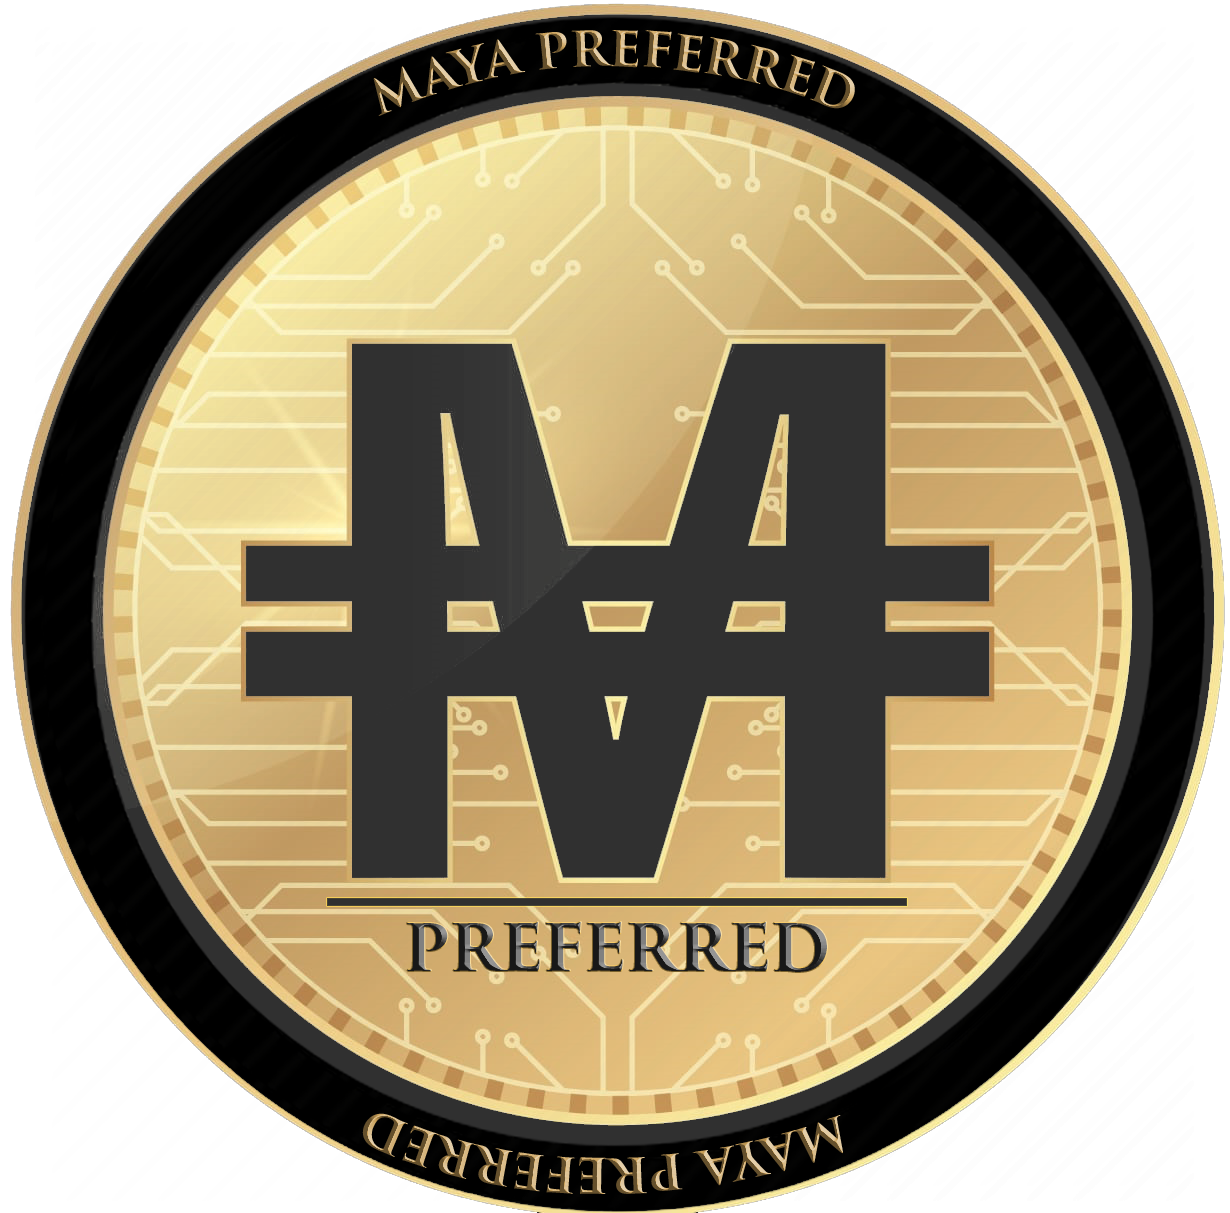 Maya Preferred 223 proves Bitcoin is now backed with real Gold and Silver assets